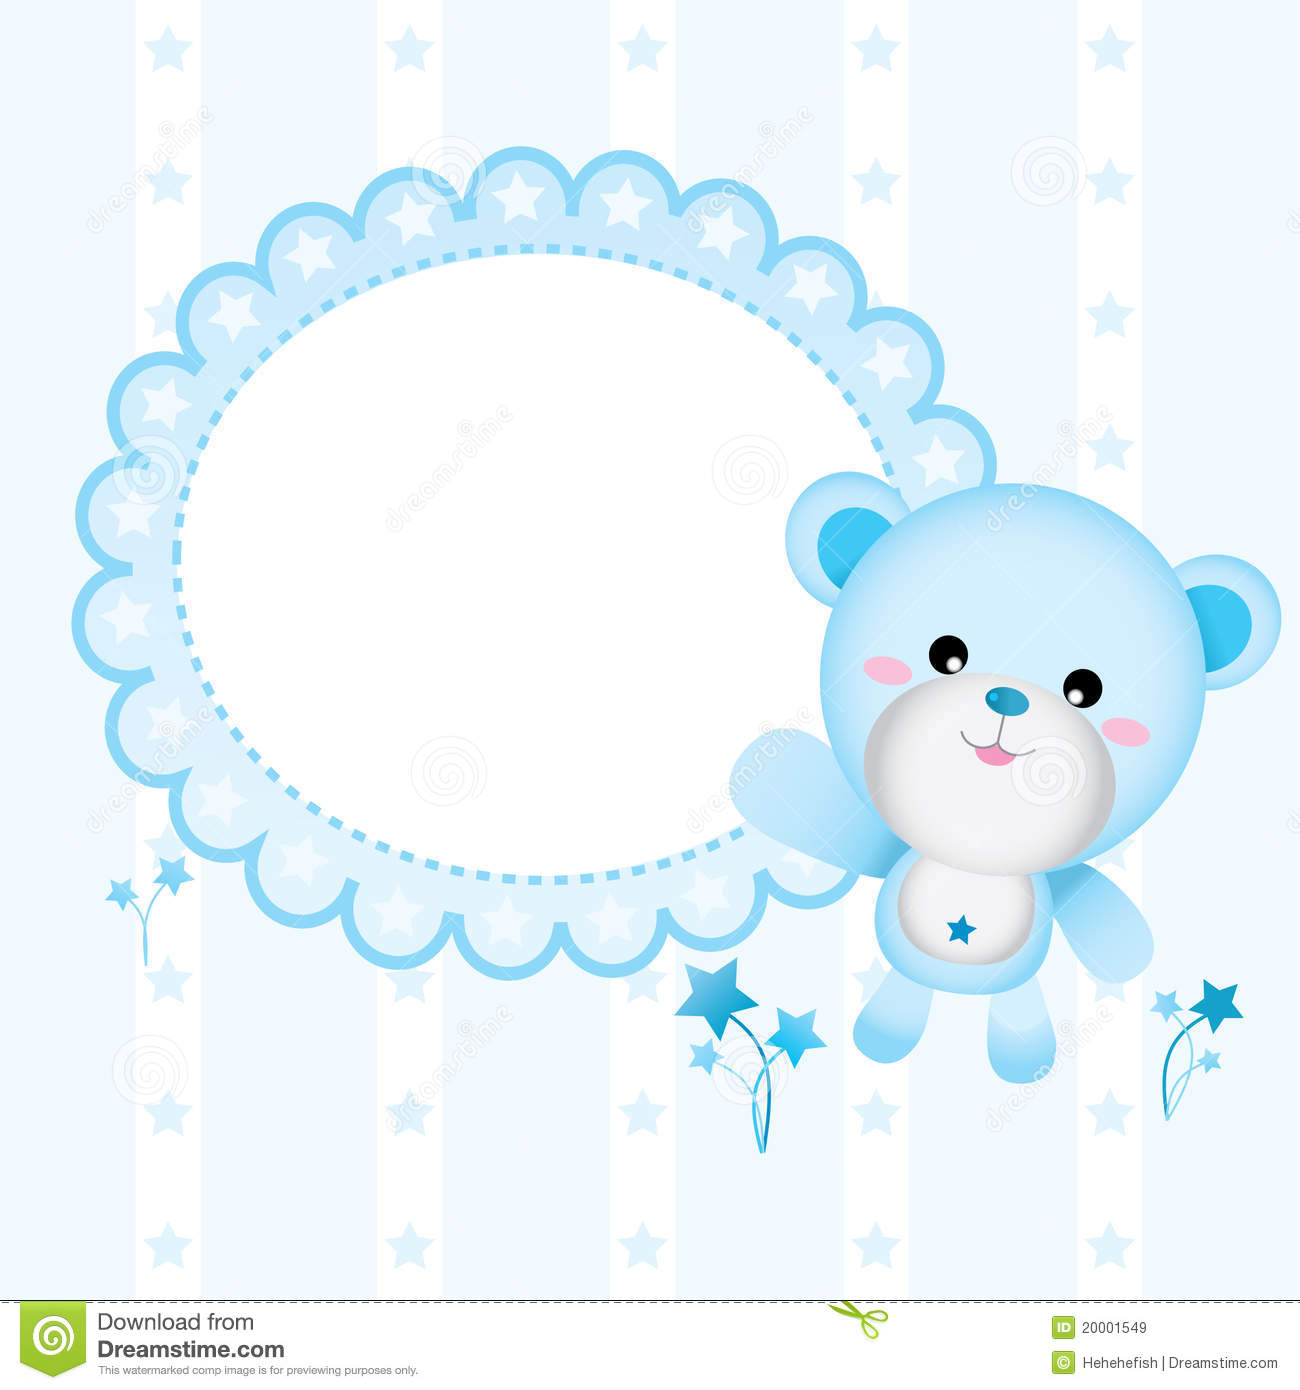 Printable Teddy Bear Baby Shower Invitations as Great Template To Make Lovely Invitations Design